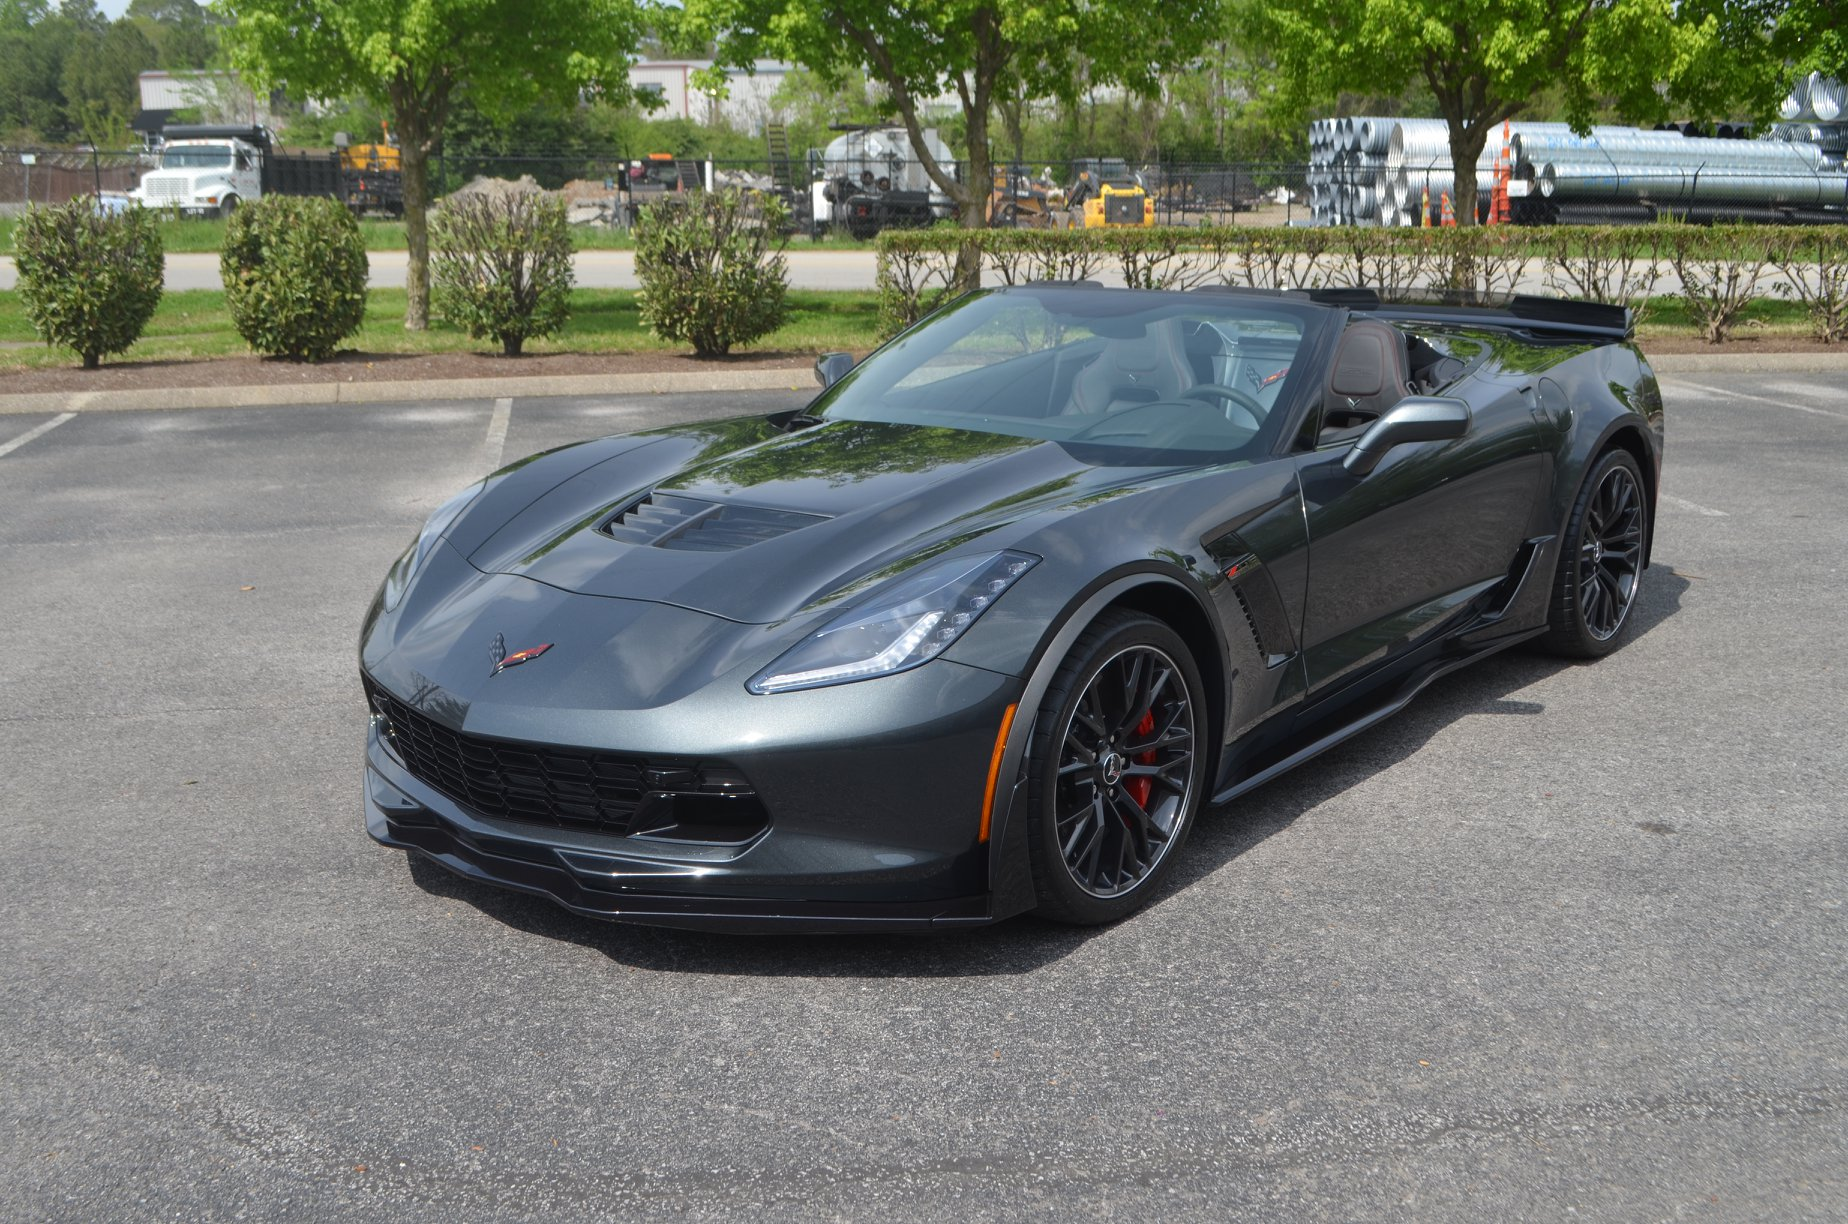 Chevy Corvette Z06: Full Body PPF, CQ FINEST Reserve, Other Aesthetic Mods